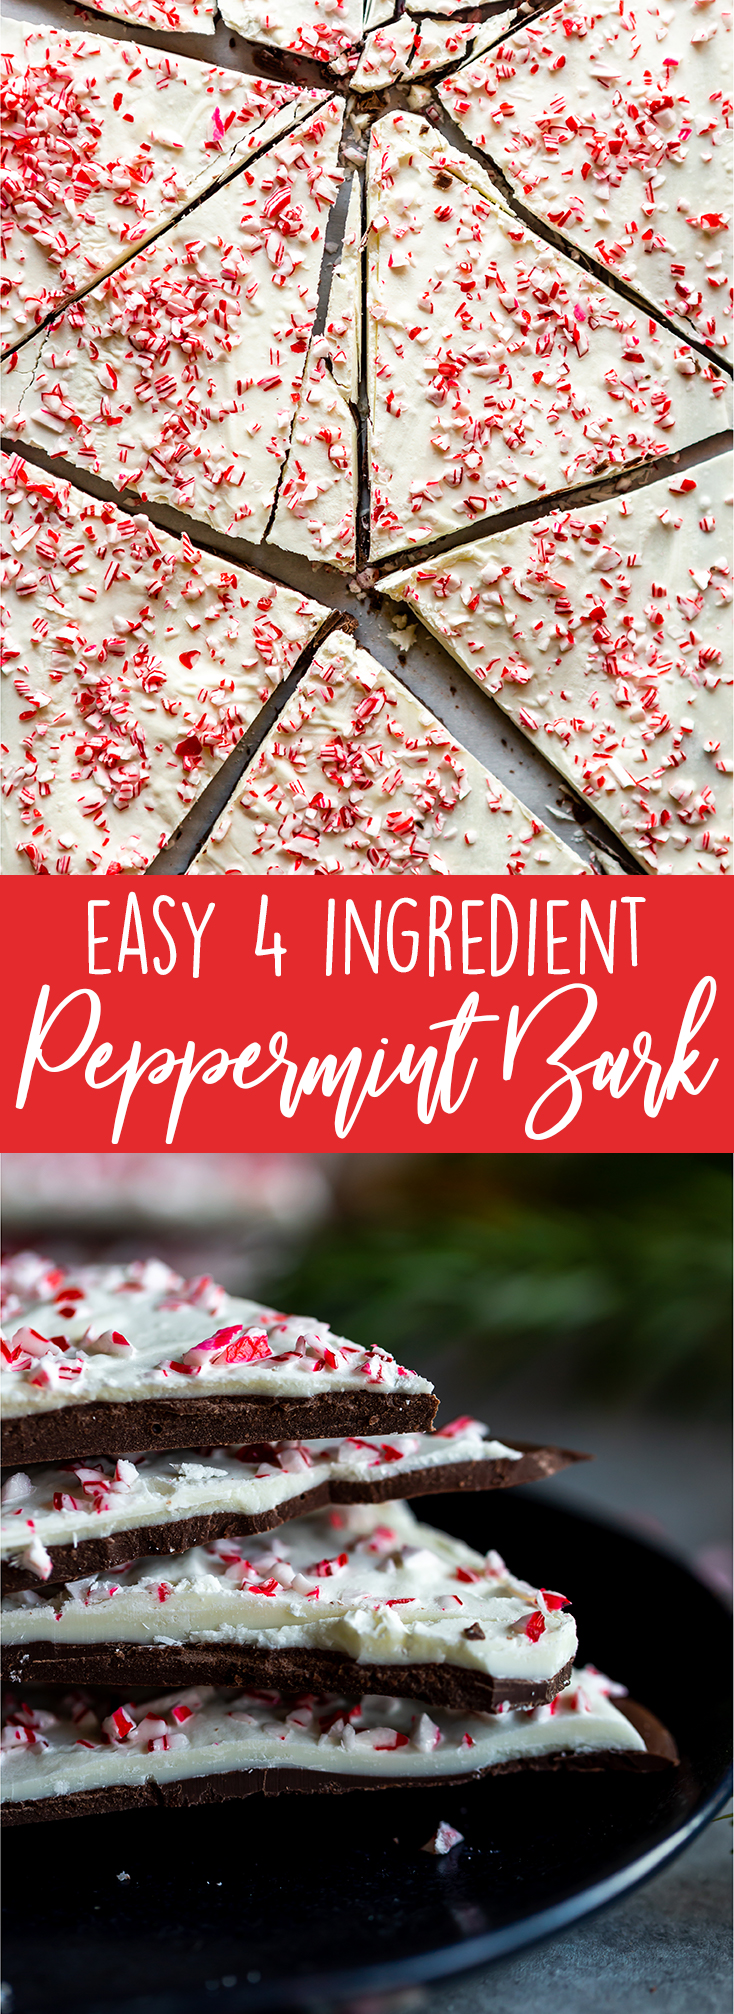 This easy peppermint bark recipe makes a great no bake Christmas treat!  Perfect for gifting, this peppermint bark has rich dark chocolate, creamy white chocolate, fresh peppermint and crushed candy canes on top. Nothing beats that classic combination of chocolate and peppermint! |Easy peppermint bark recipe | Williams sonoma peppermint bark | no bak christmas recipes | christmas food gifts | Cookie exchange recipes